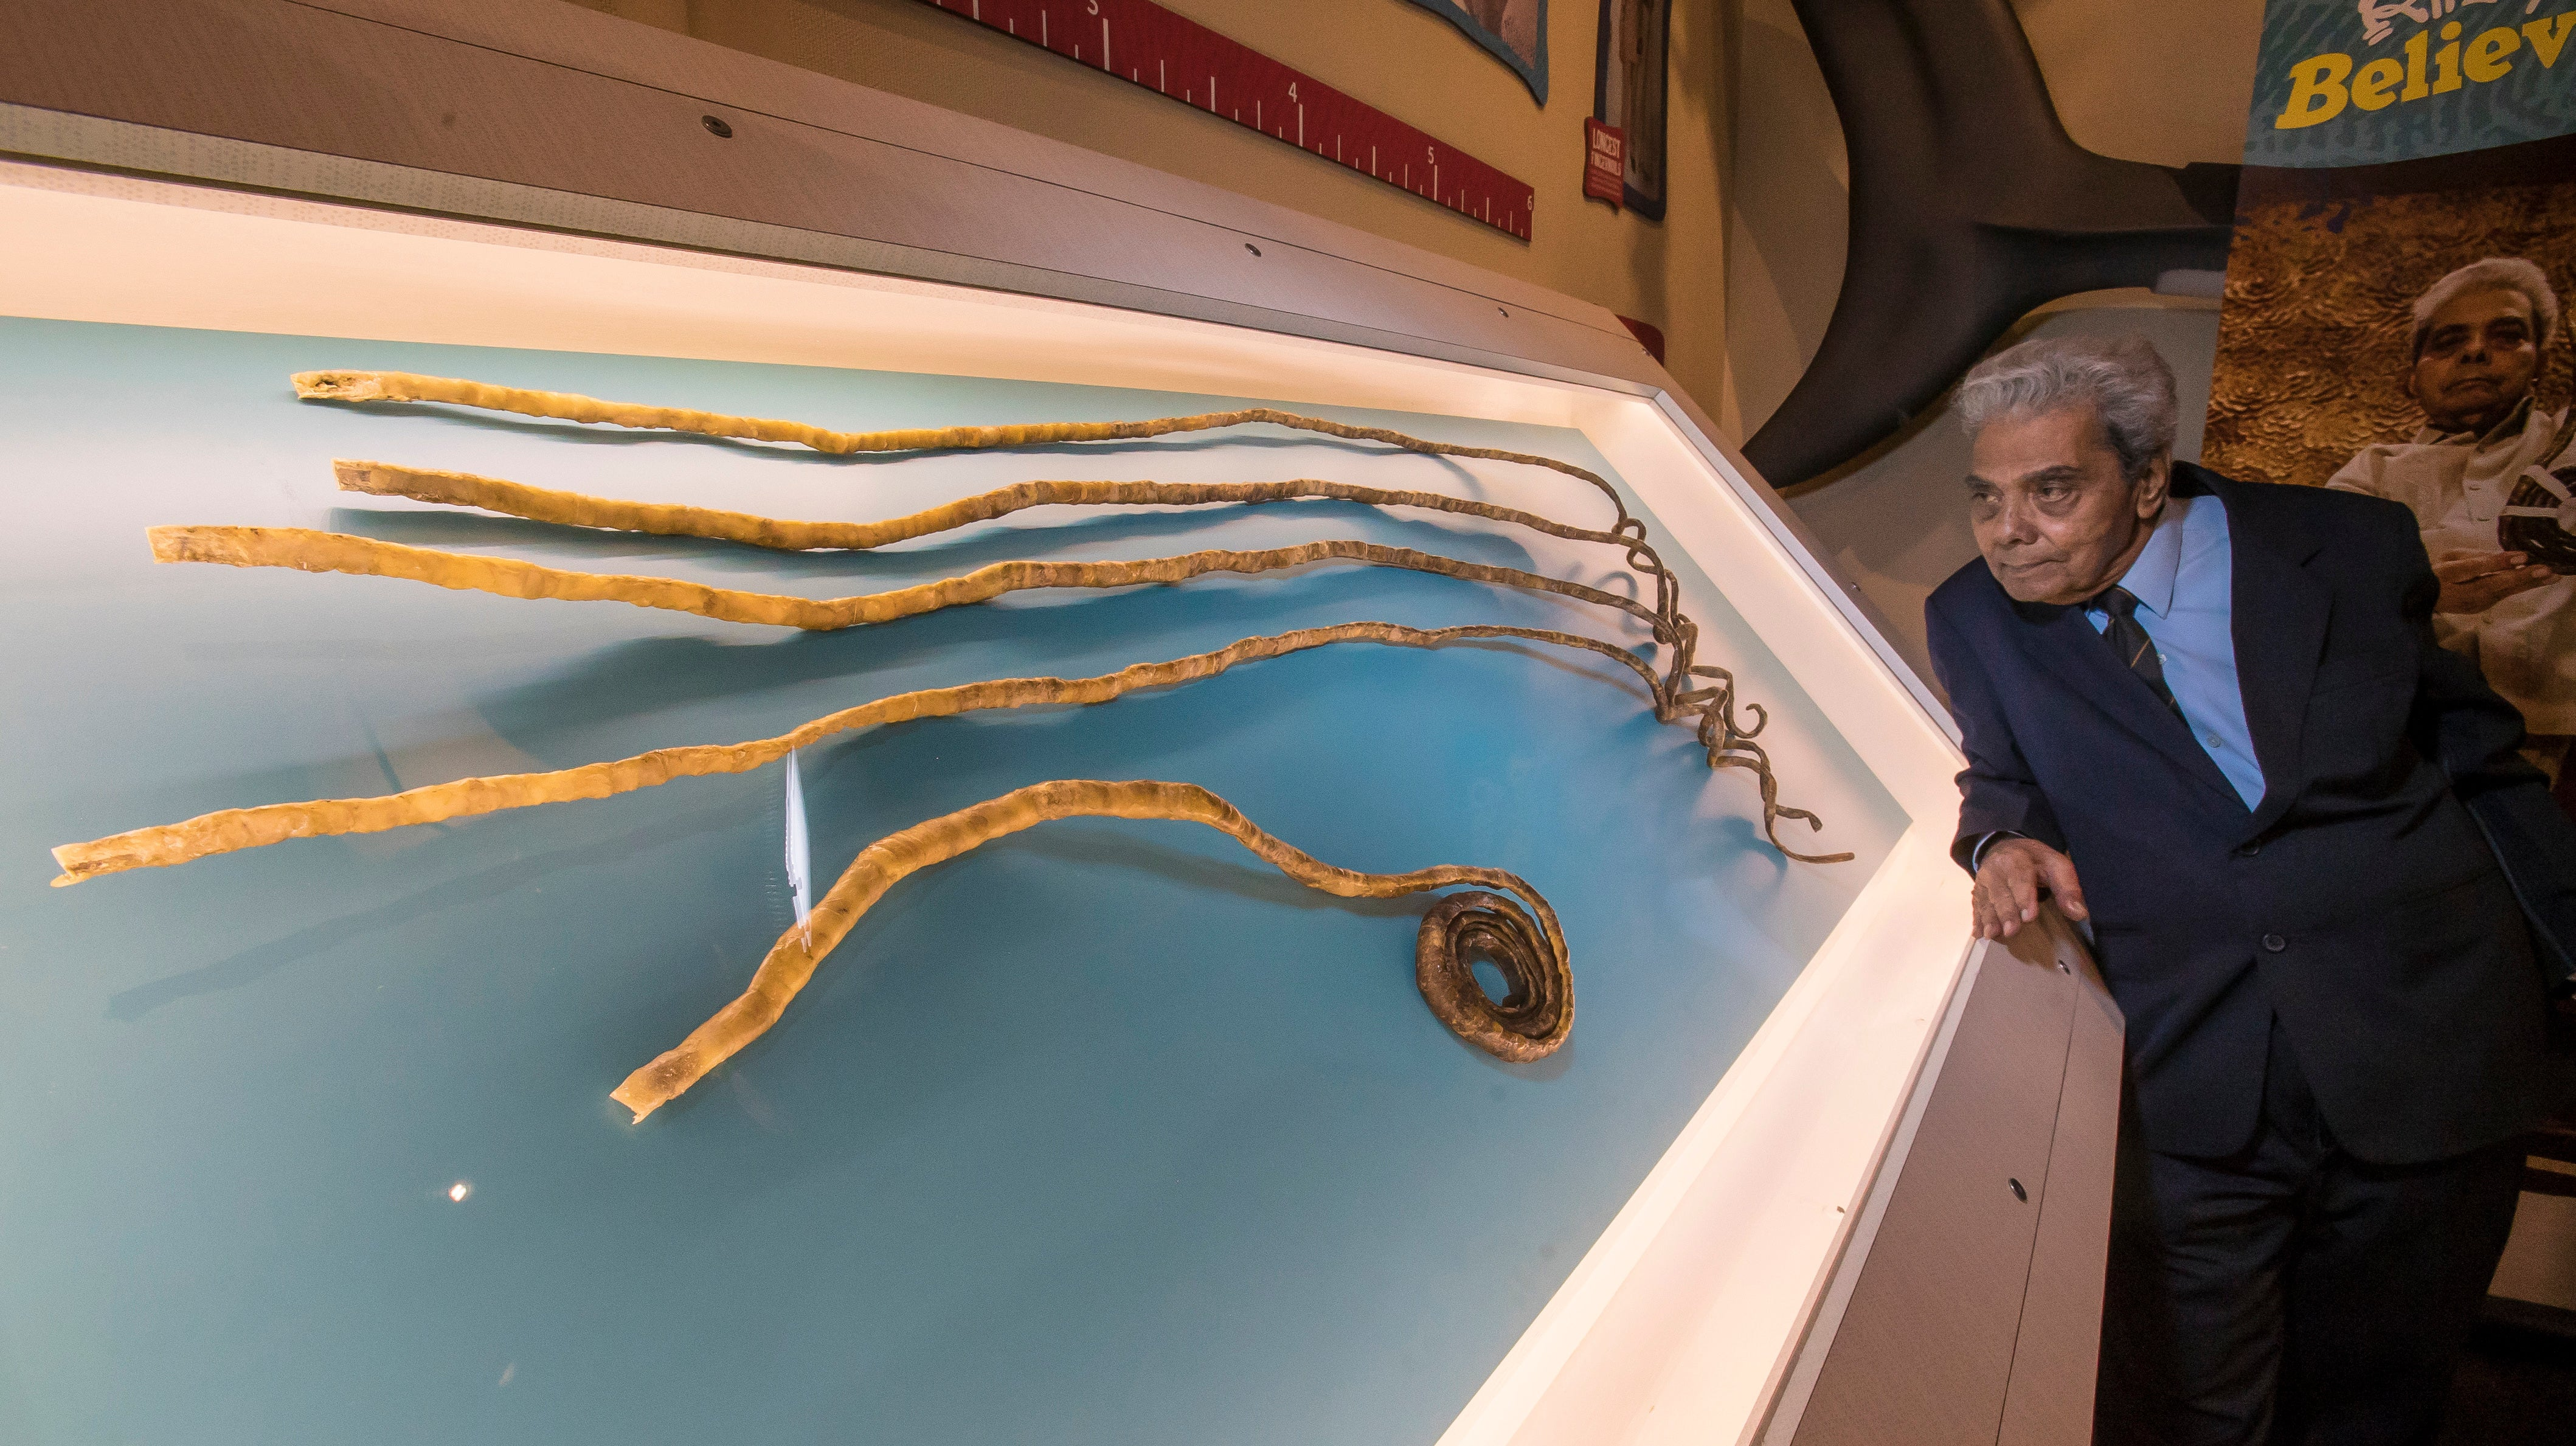 After Growing World\'s Longest Nails Out Of Spite, Man Sells 30-Foot ...